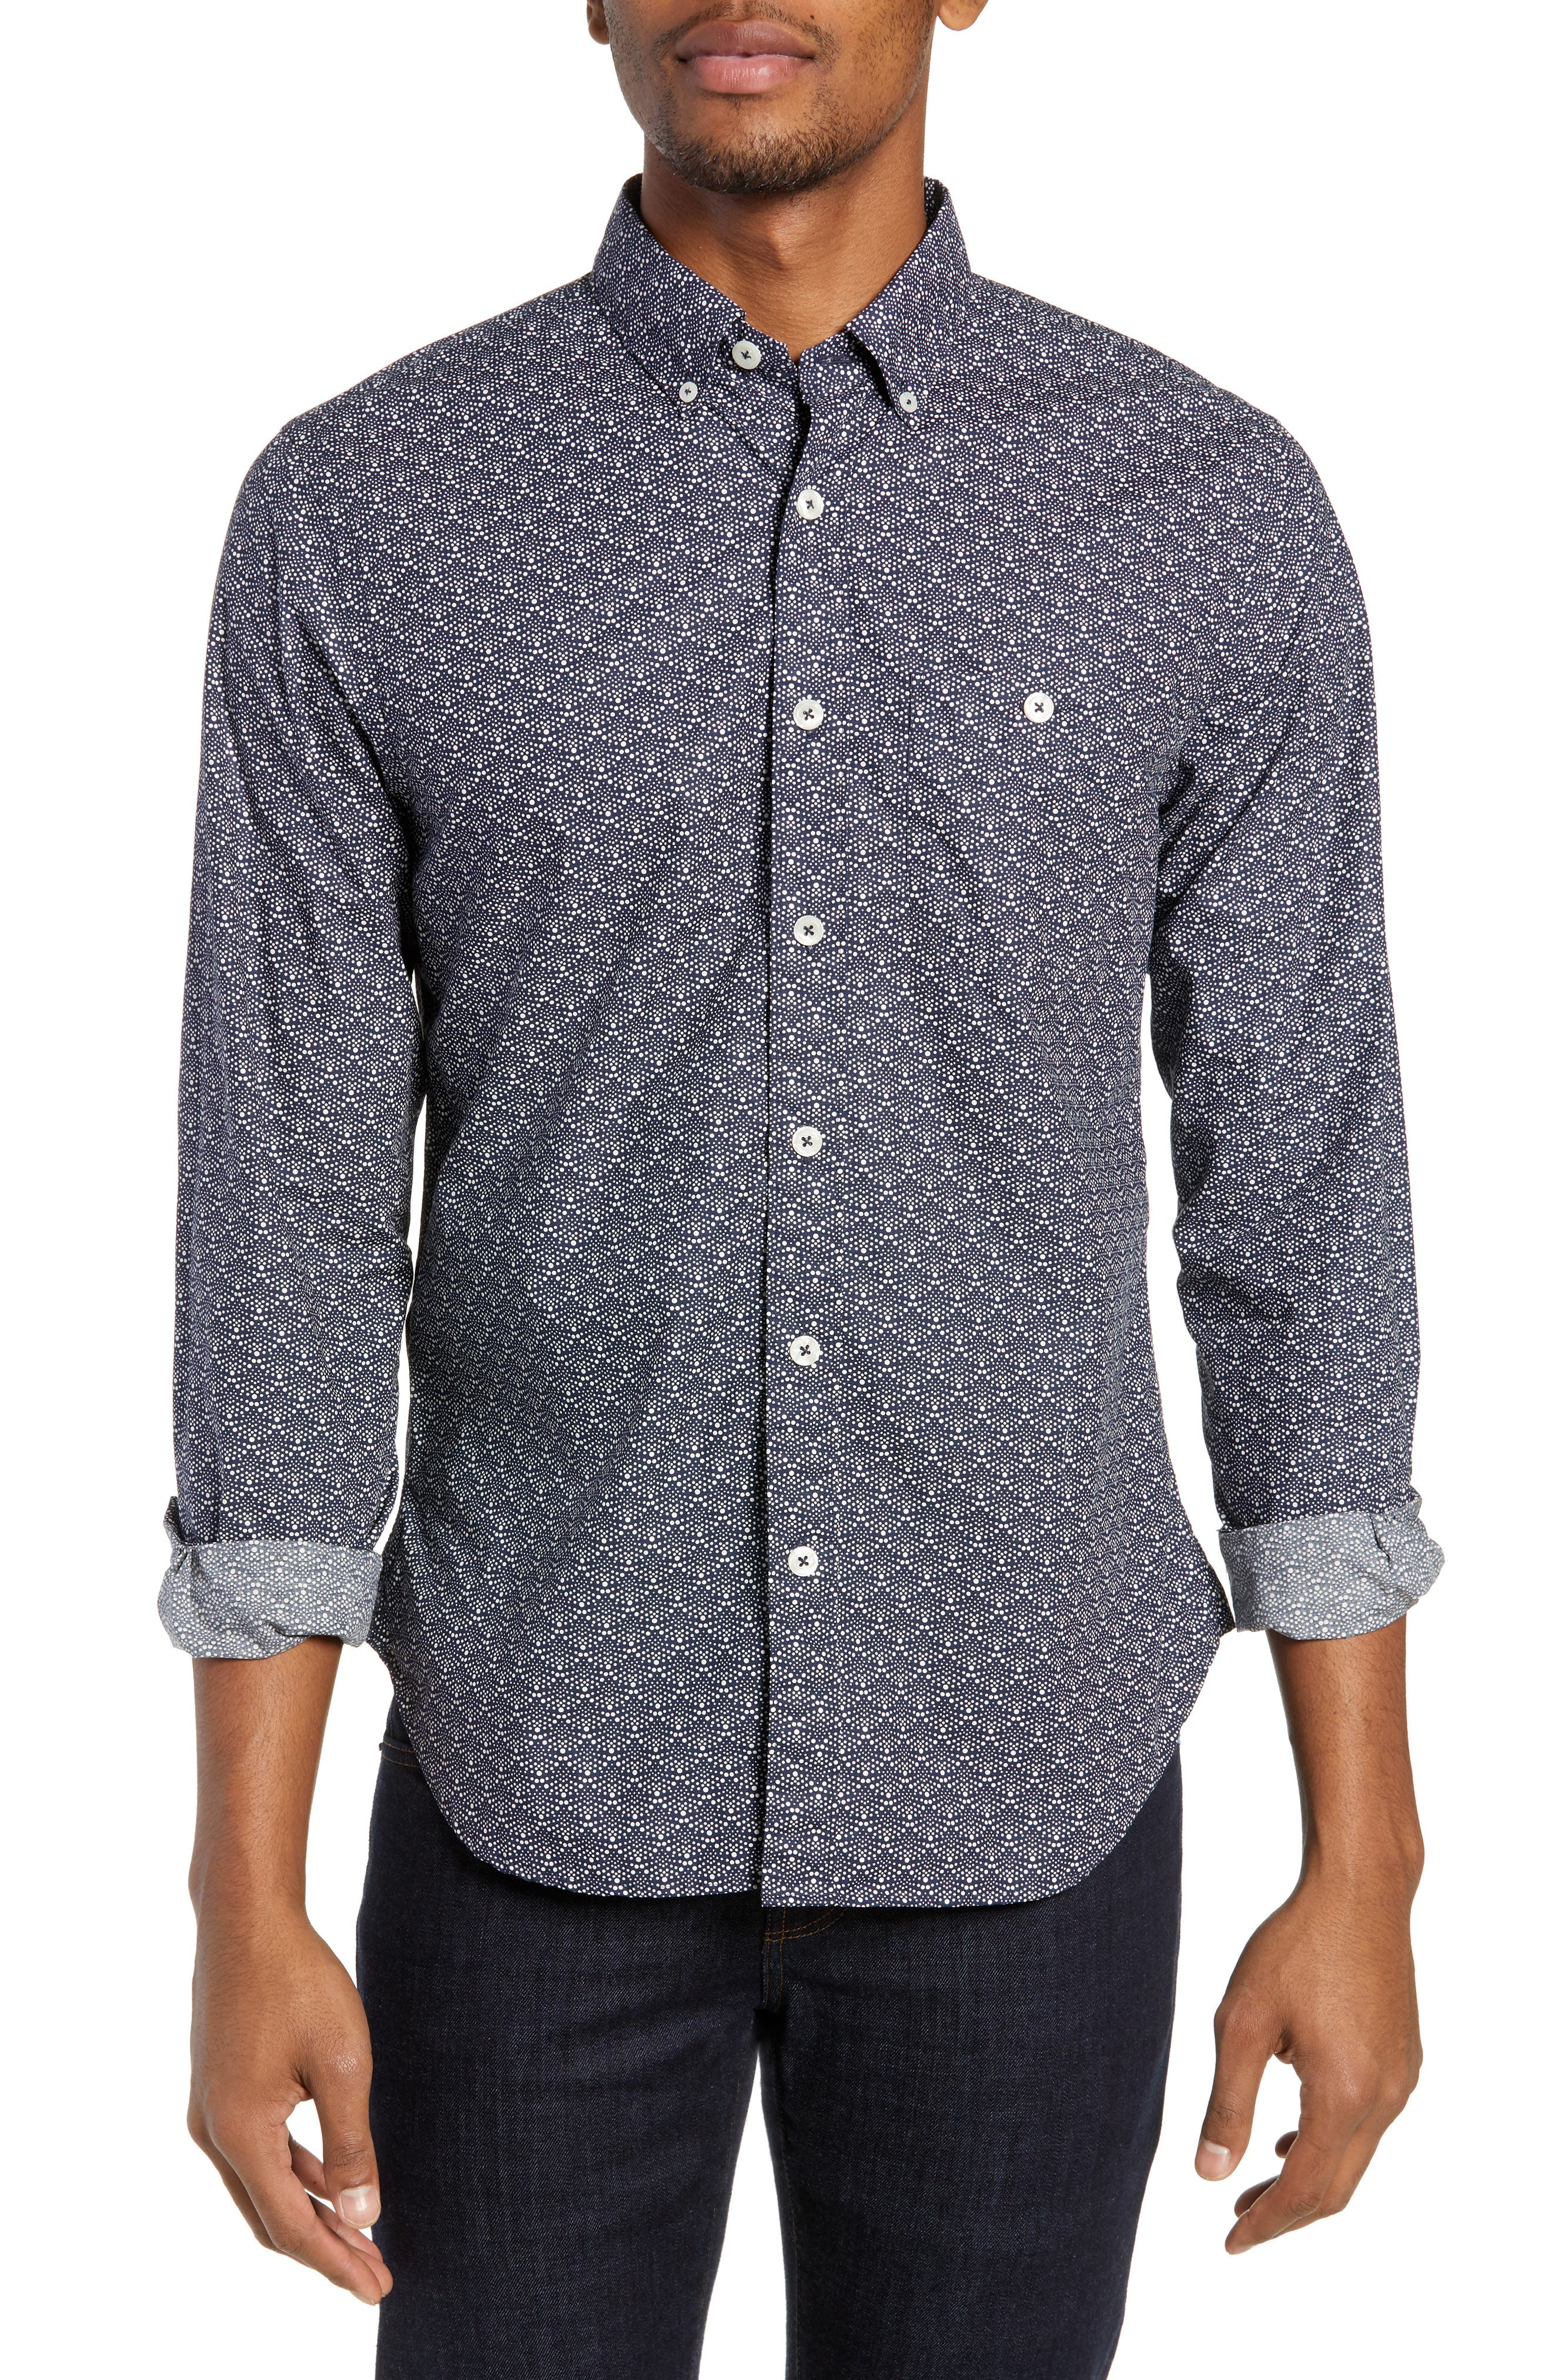 TODD SNYDER Liberty Patterned Regular Fit Sport Shirt in Navy